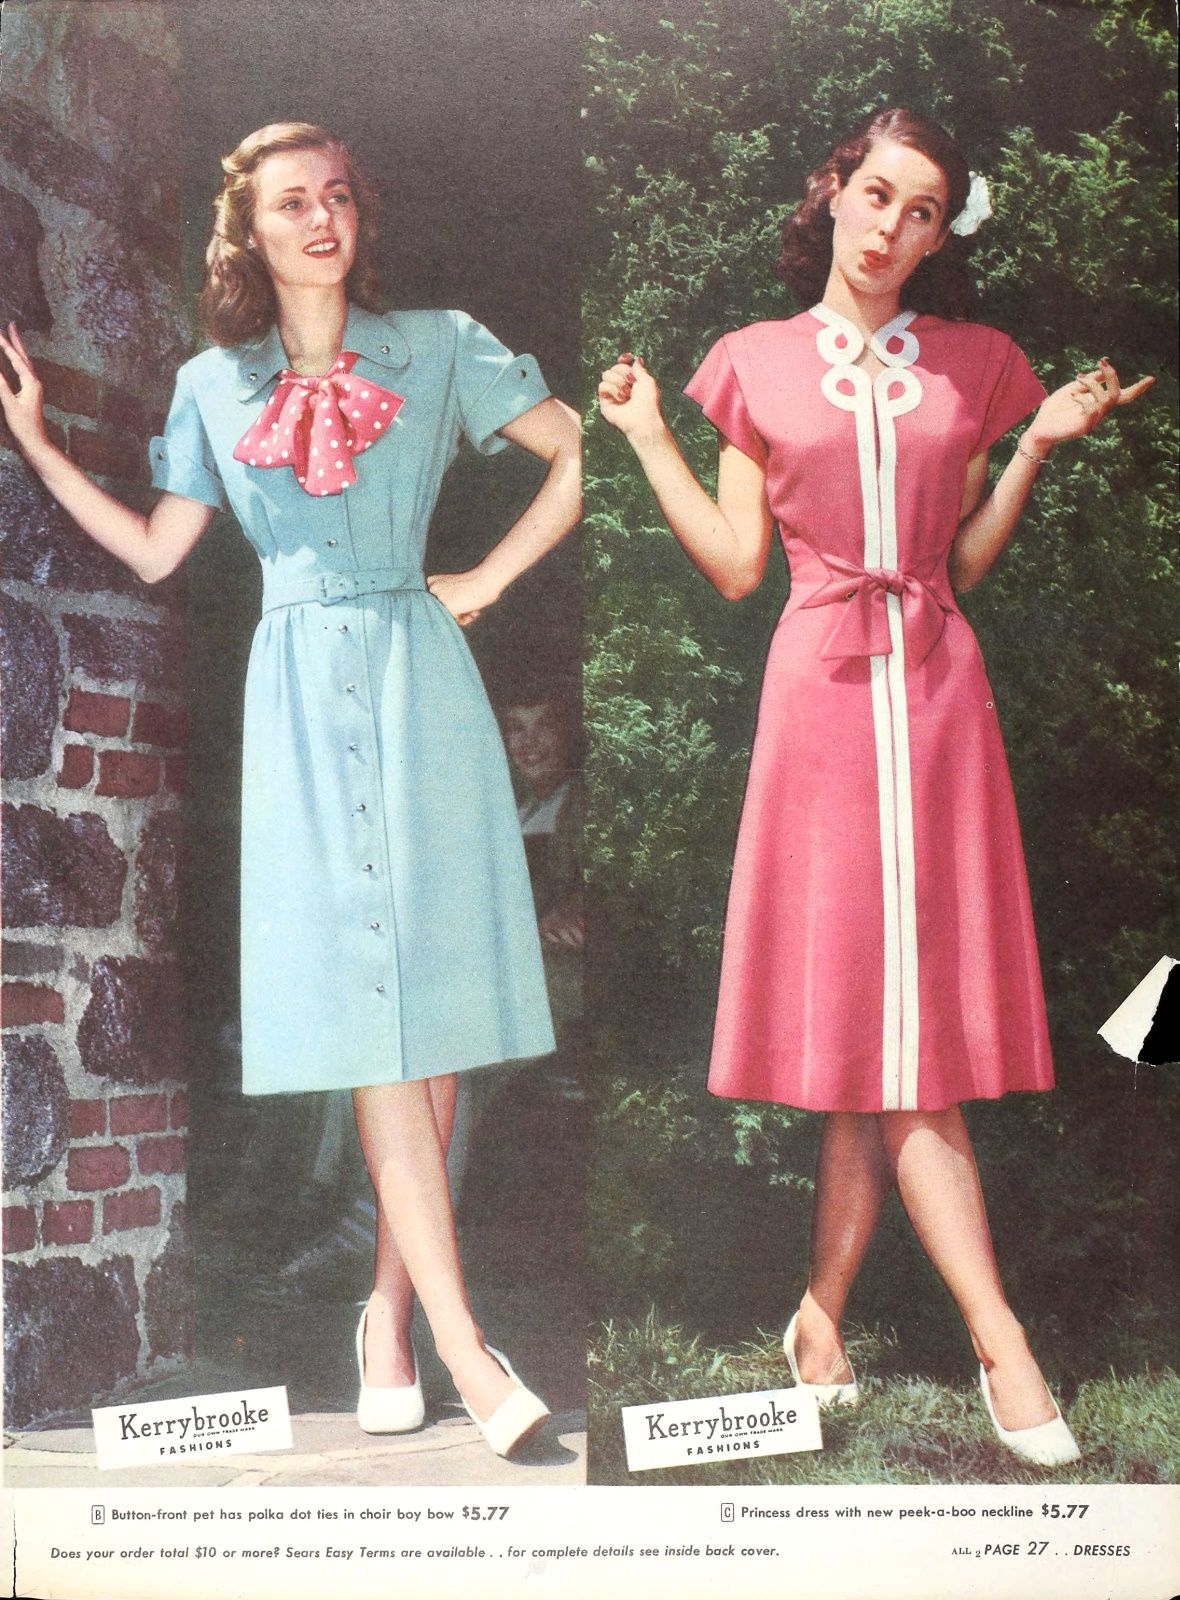 1000 Images About 1940s Fashion On Pinterest: Tuppence Ha'penny: 1940s Fashions In Red, White & Blue